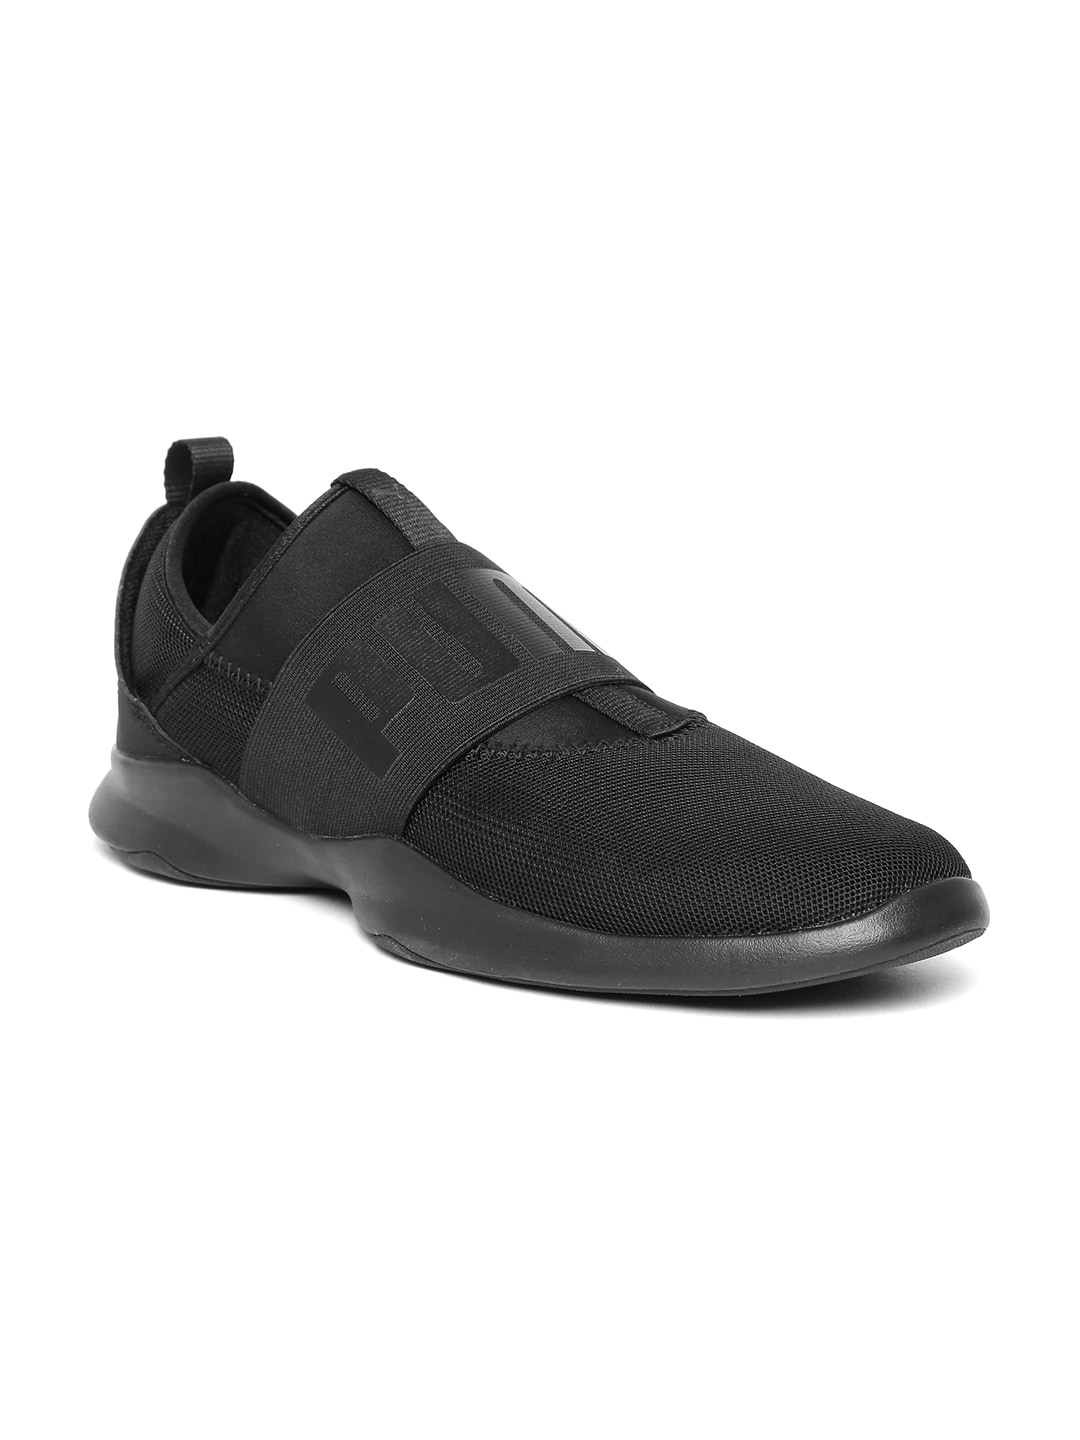 Puma Slip On Shoes - Buy Puma Slip On Shoes online in India 1ff699eb24a5